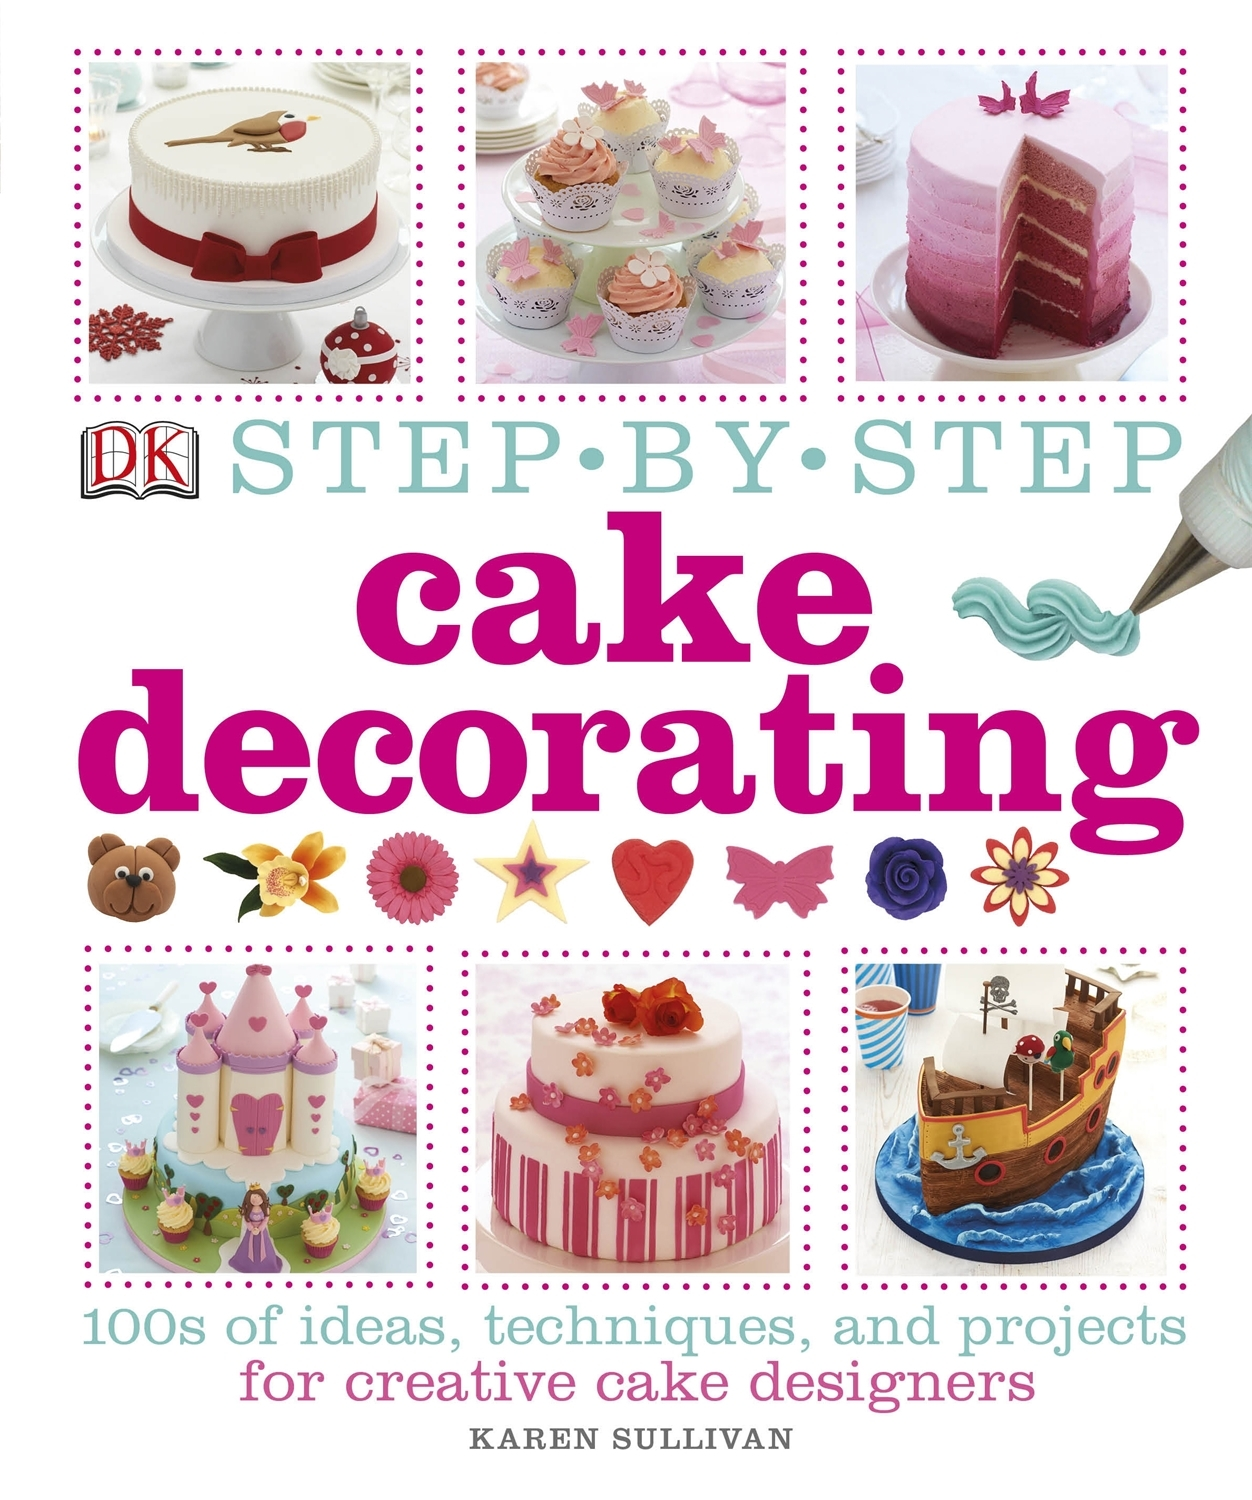 Cake Decorating How To Books : Review: Step by Step Cake Decorating by Karen Sullivan ...